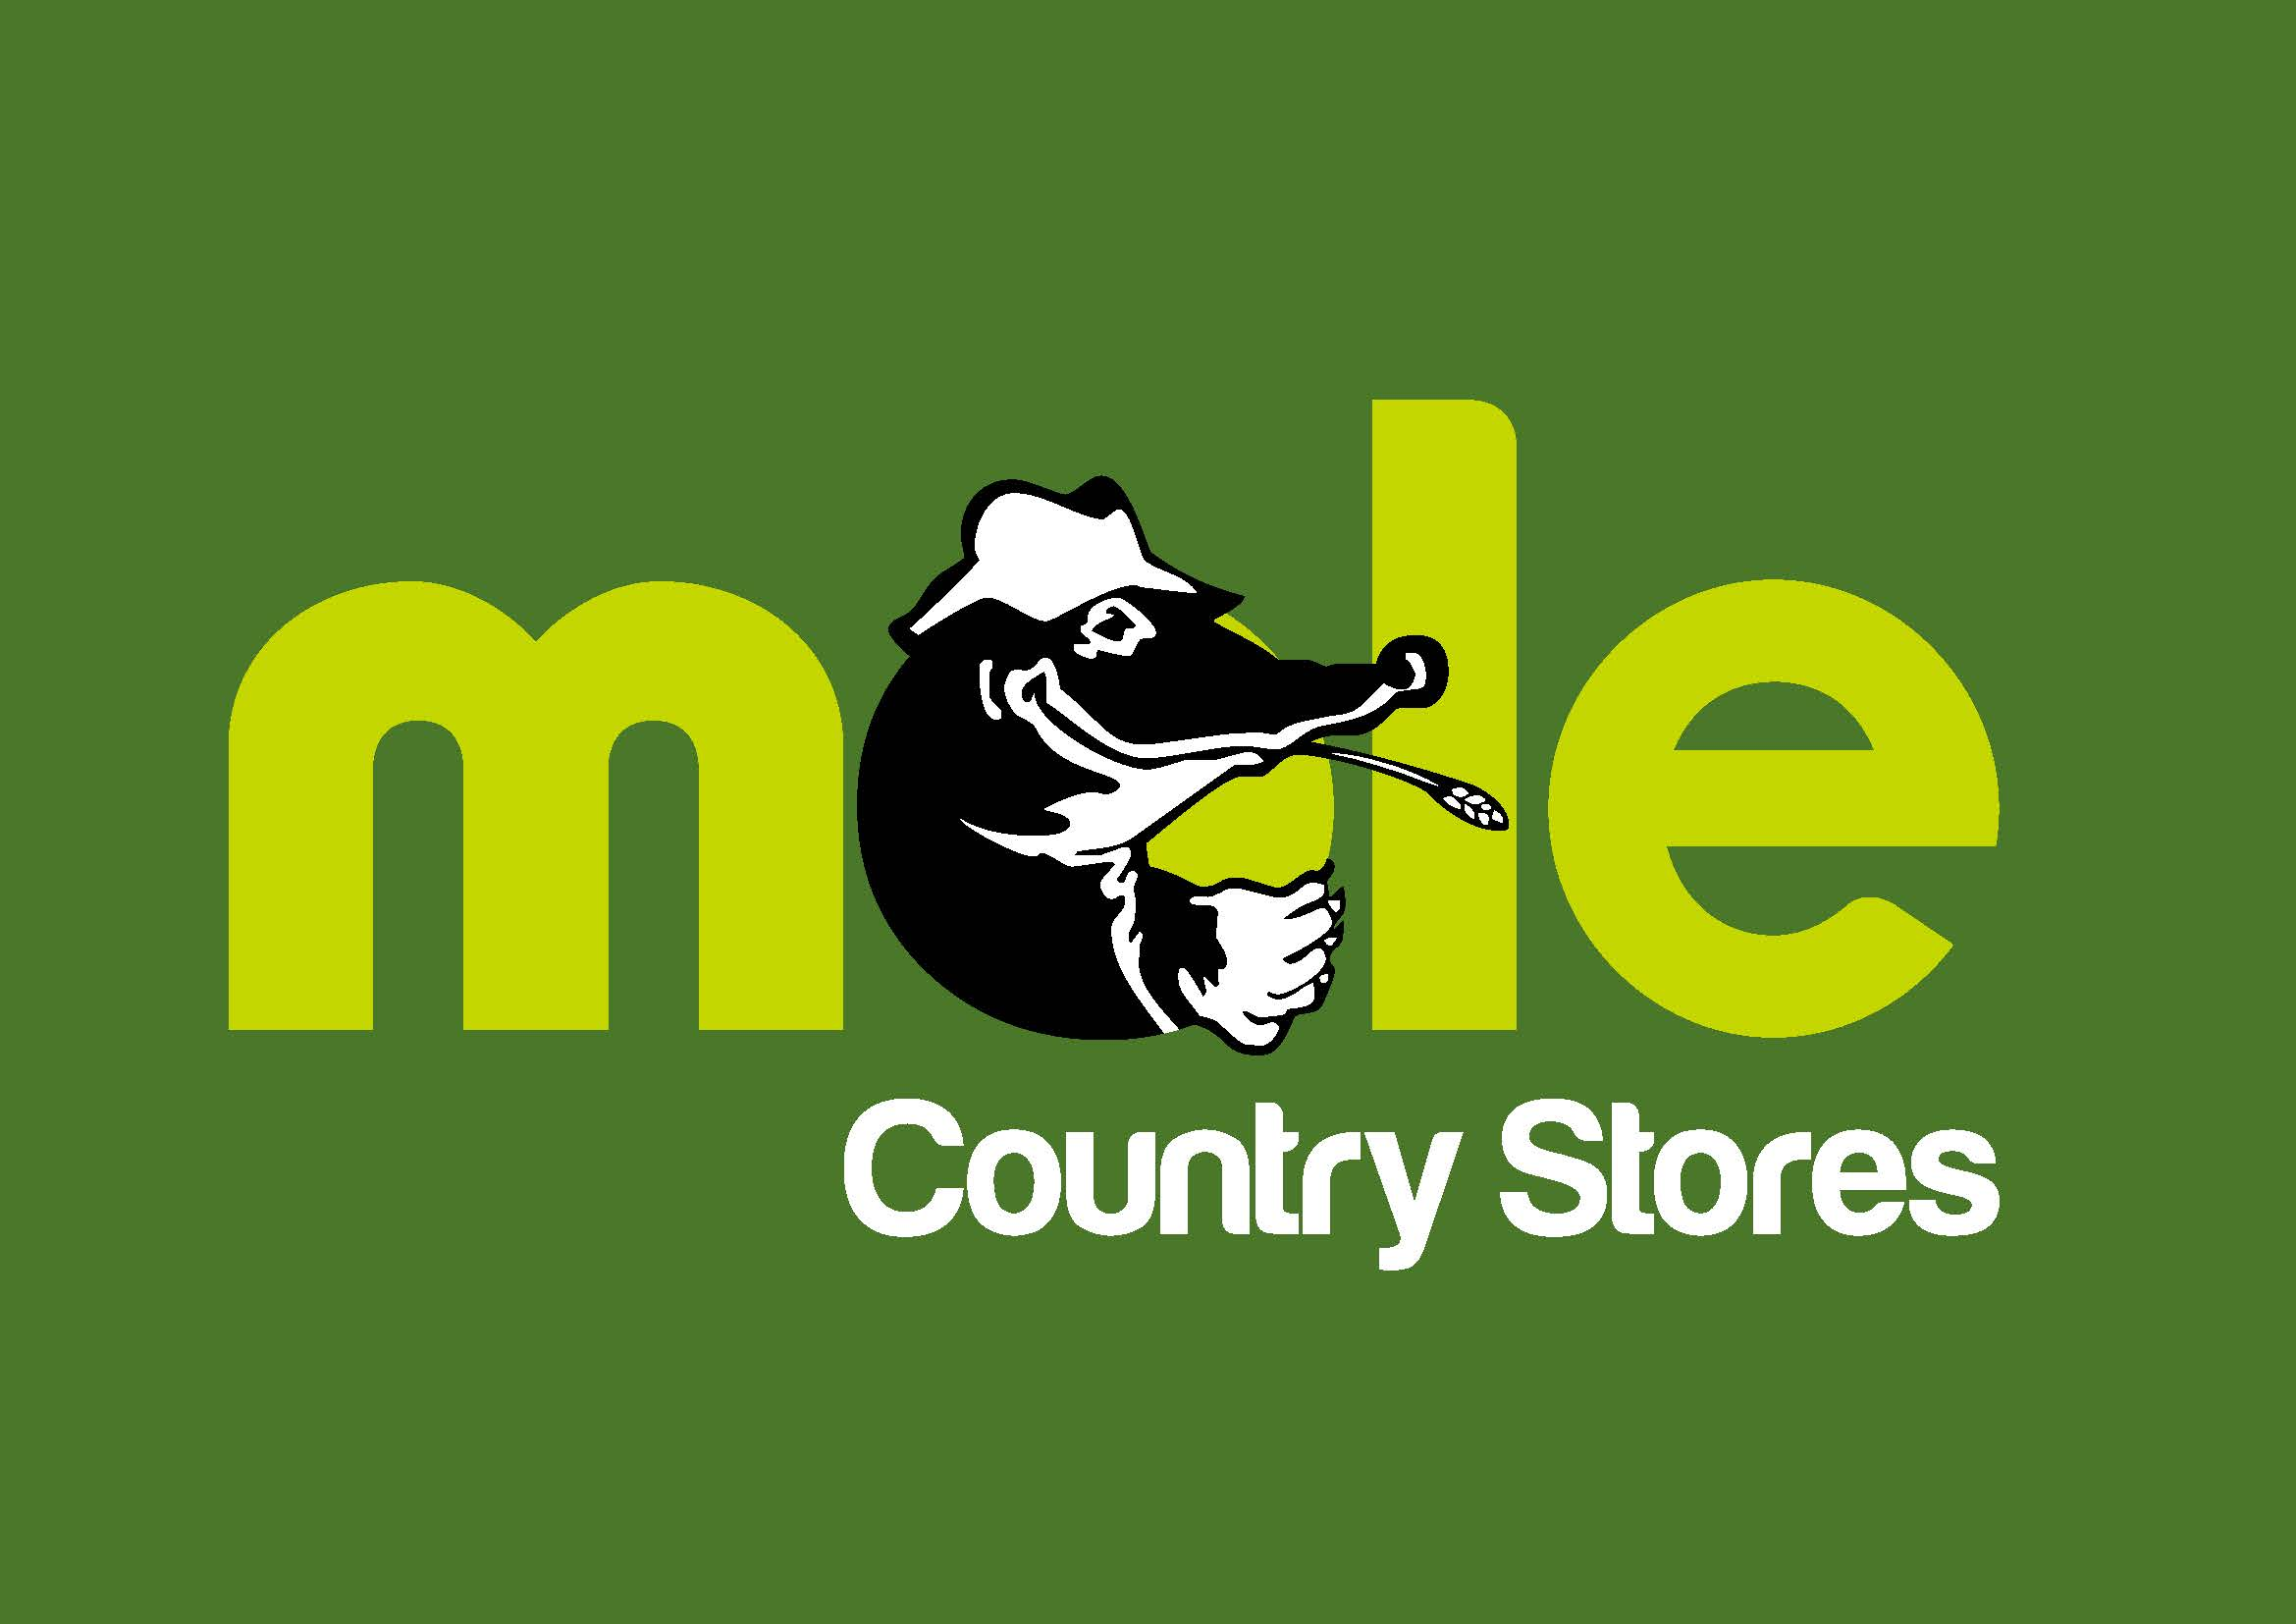 Mole Country Stores Driffield